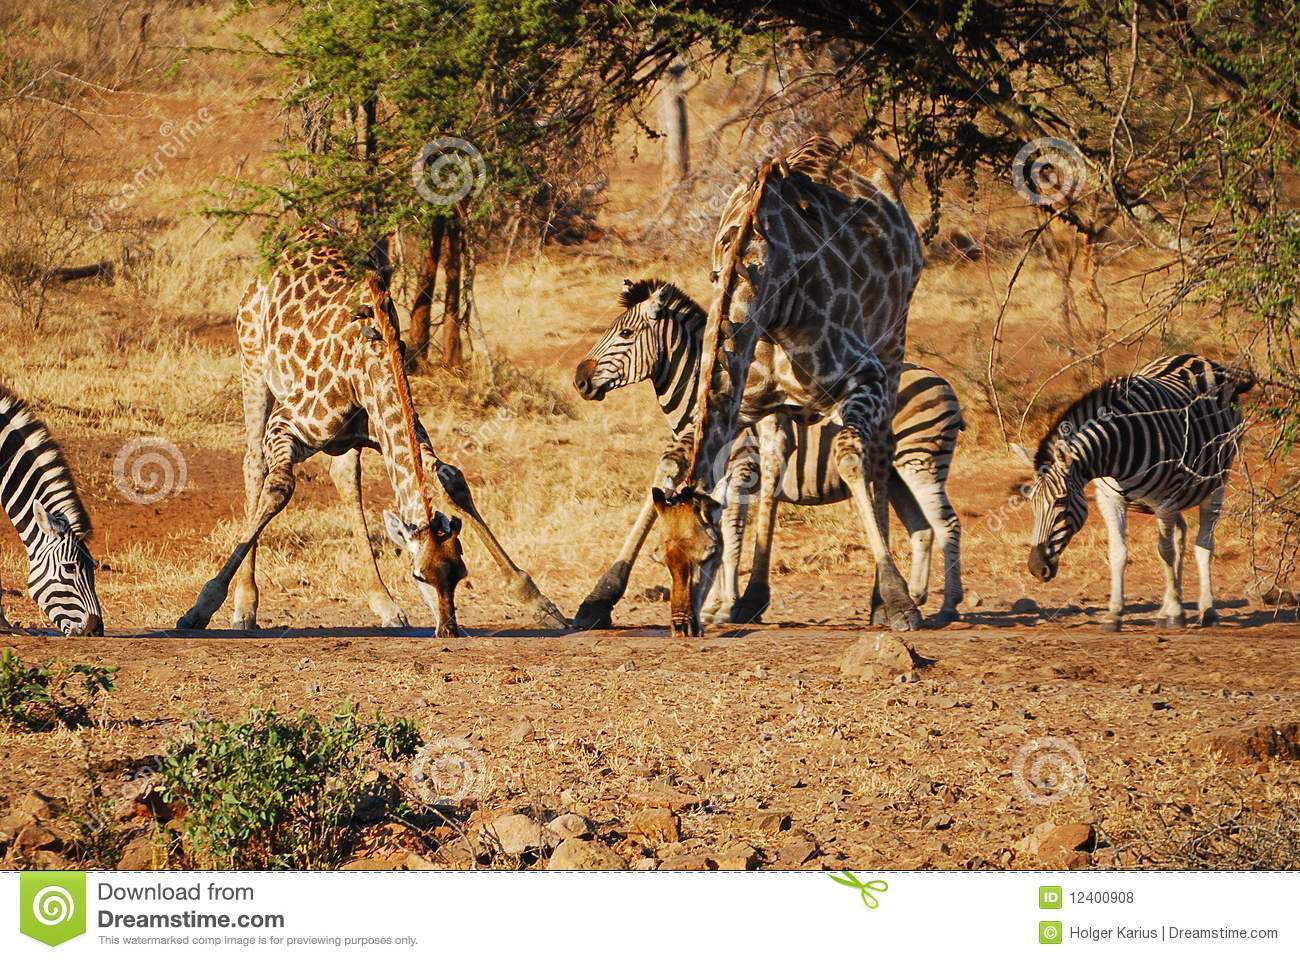 At the waterhole (South Africa)